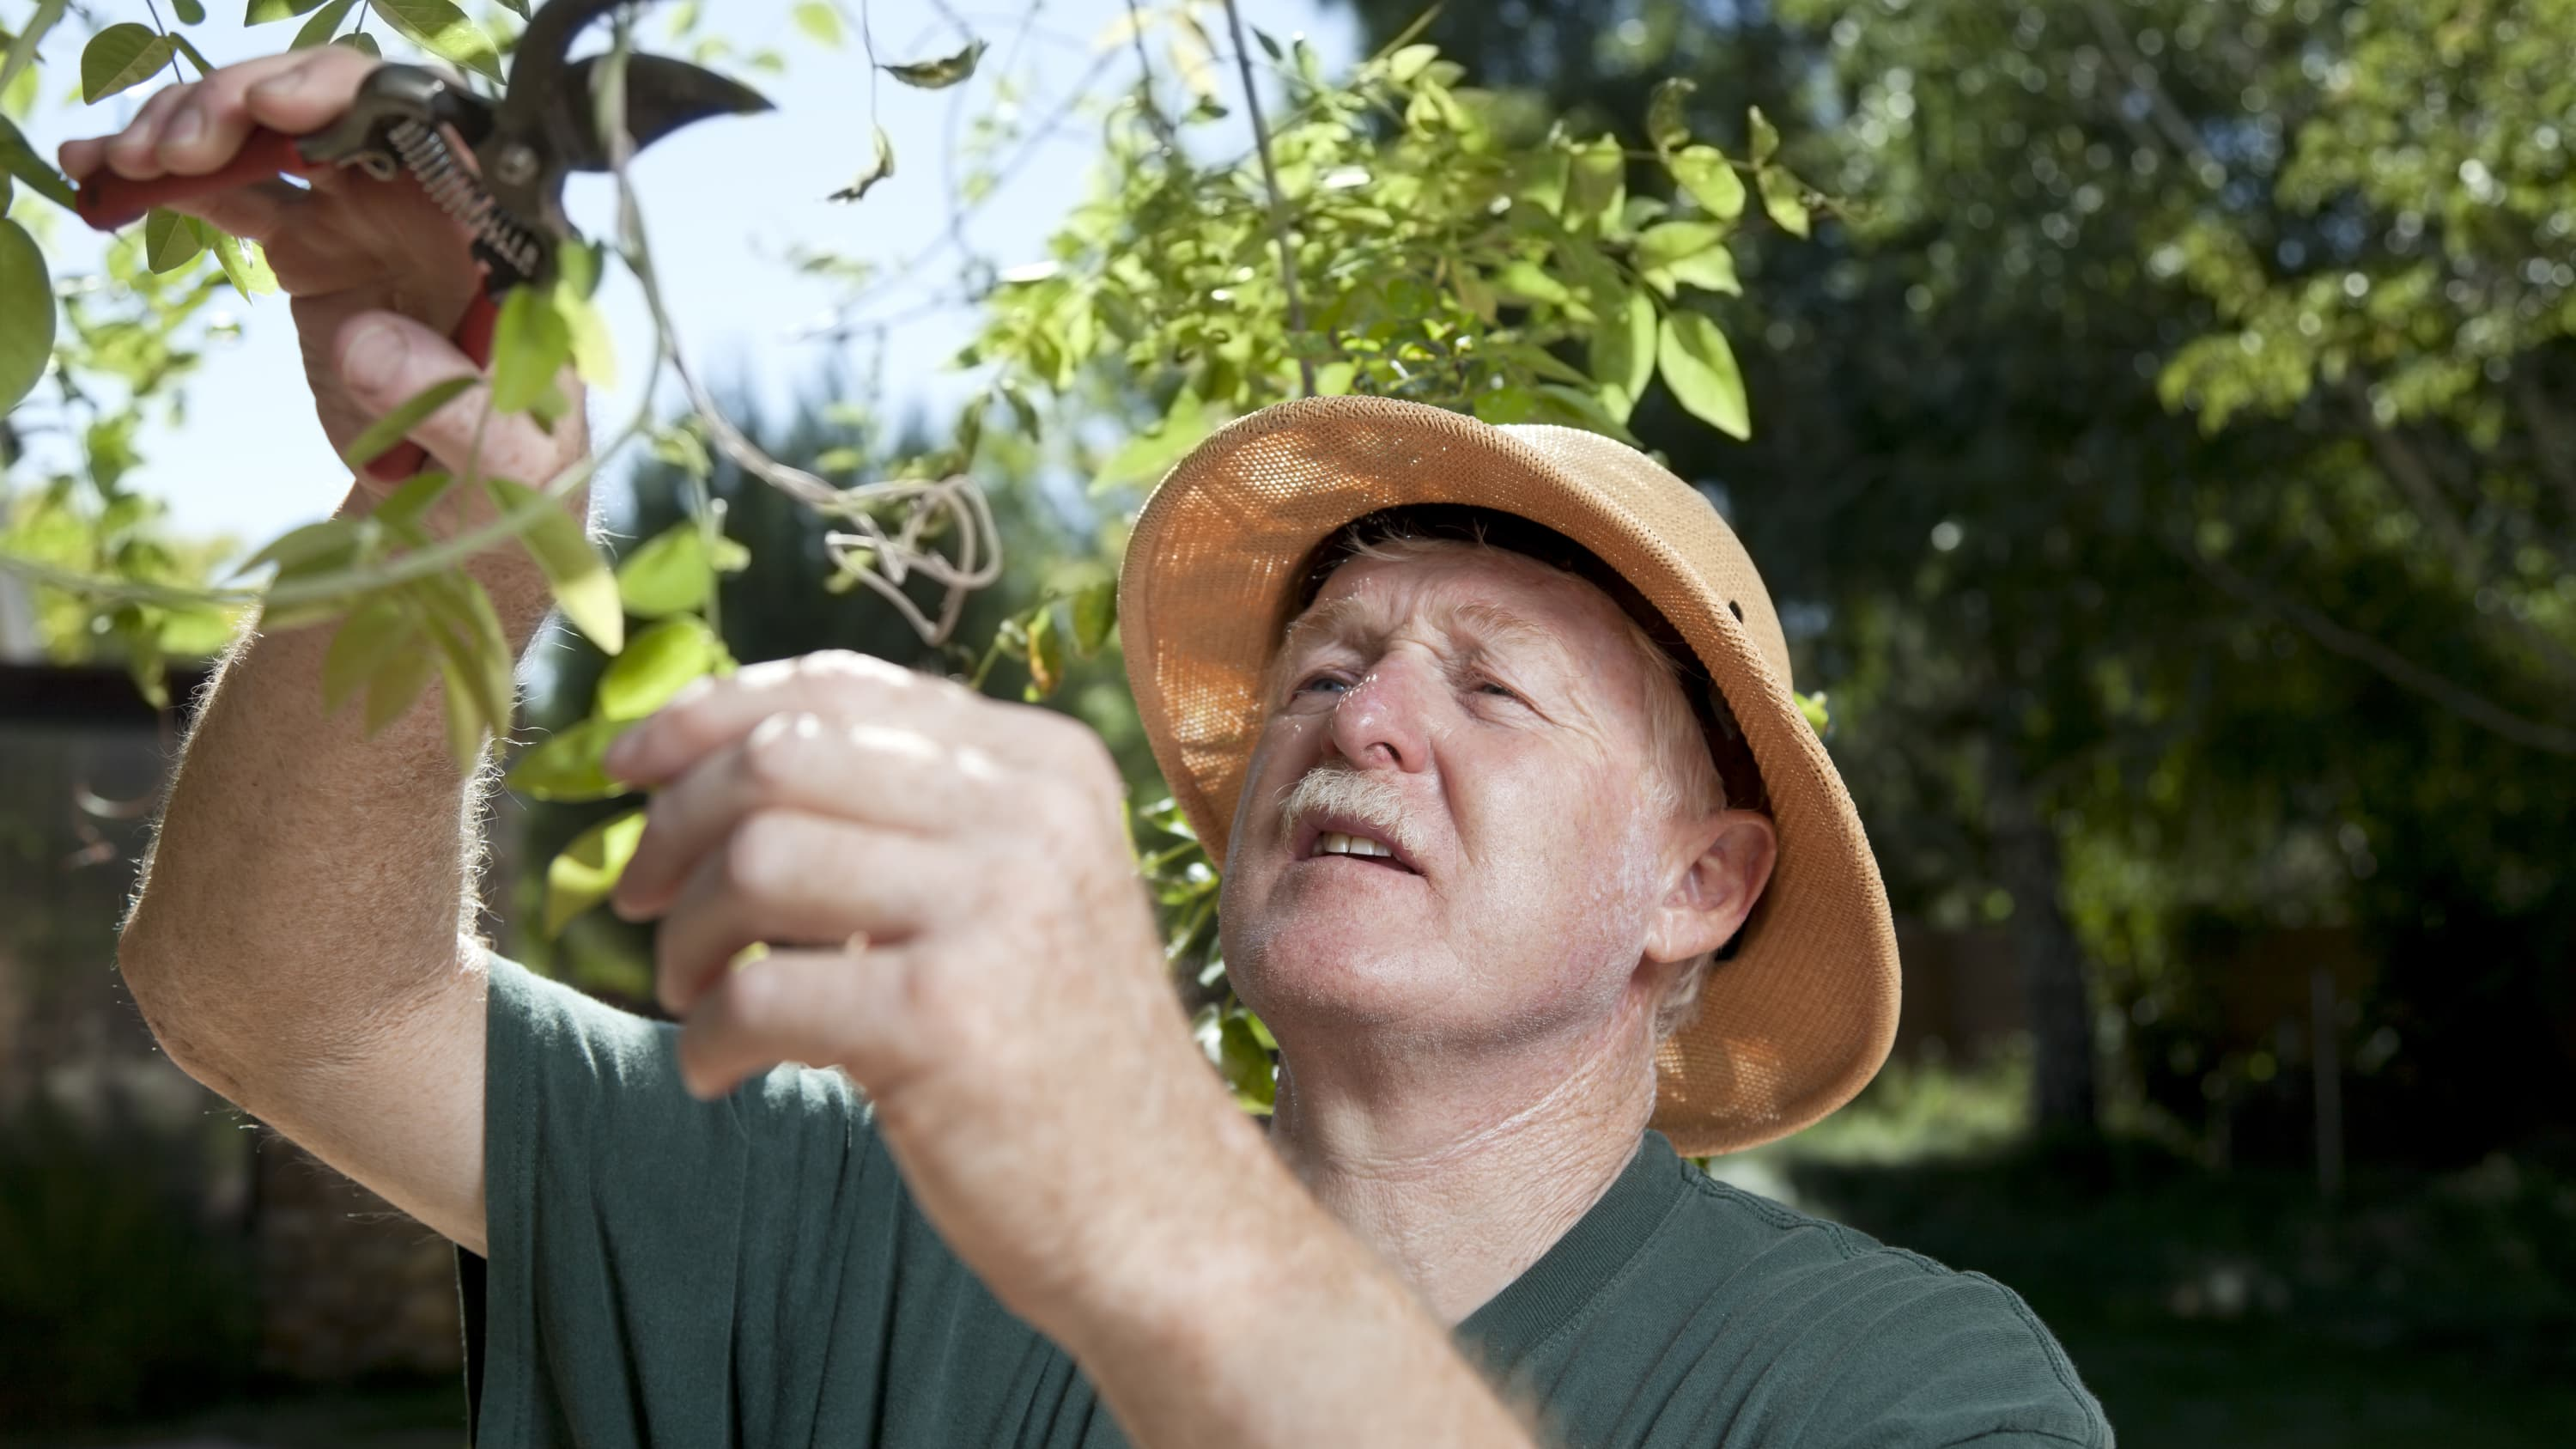 a man wears a hat while gardening to protect himself from basal cell carcinoma